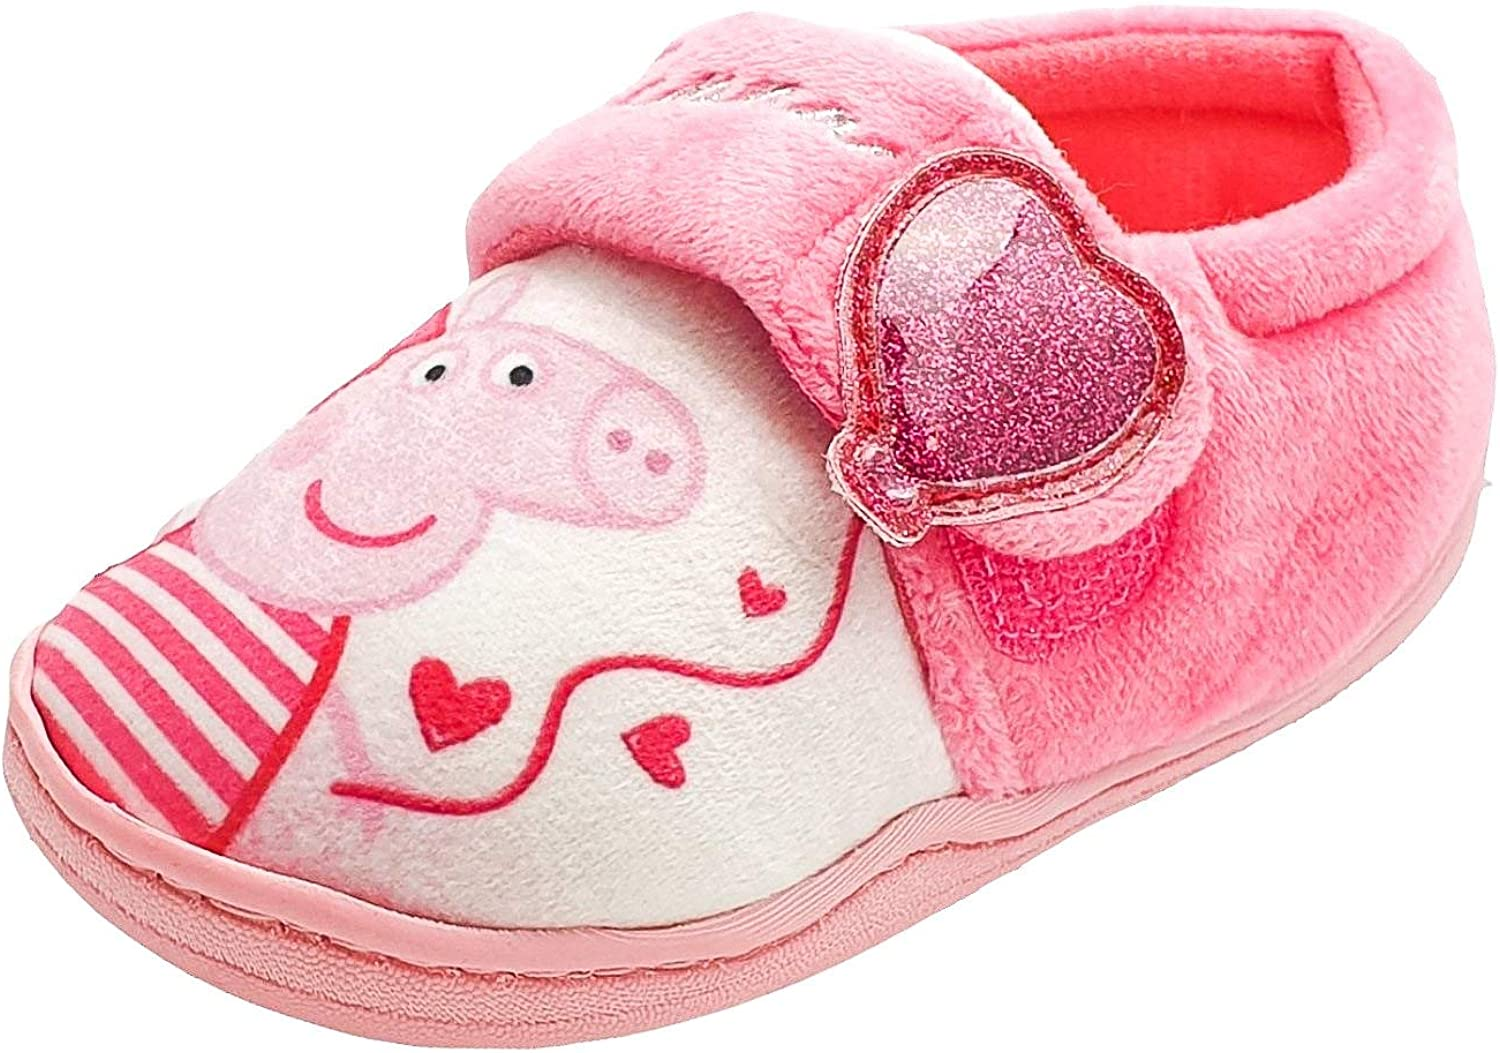 Peppa Pig Girls Slippers in Pink and White